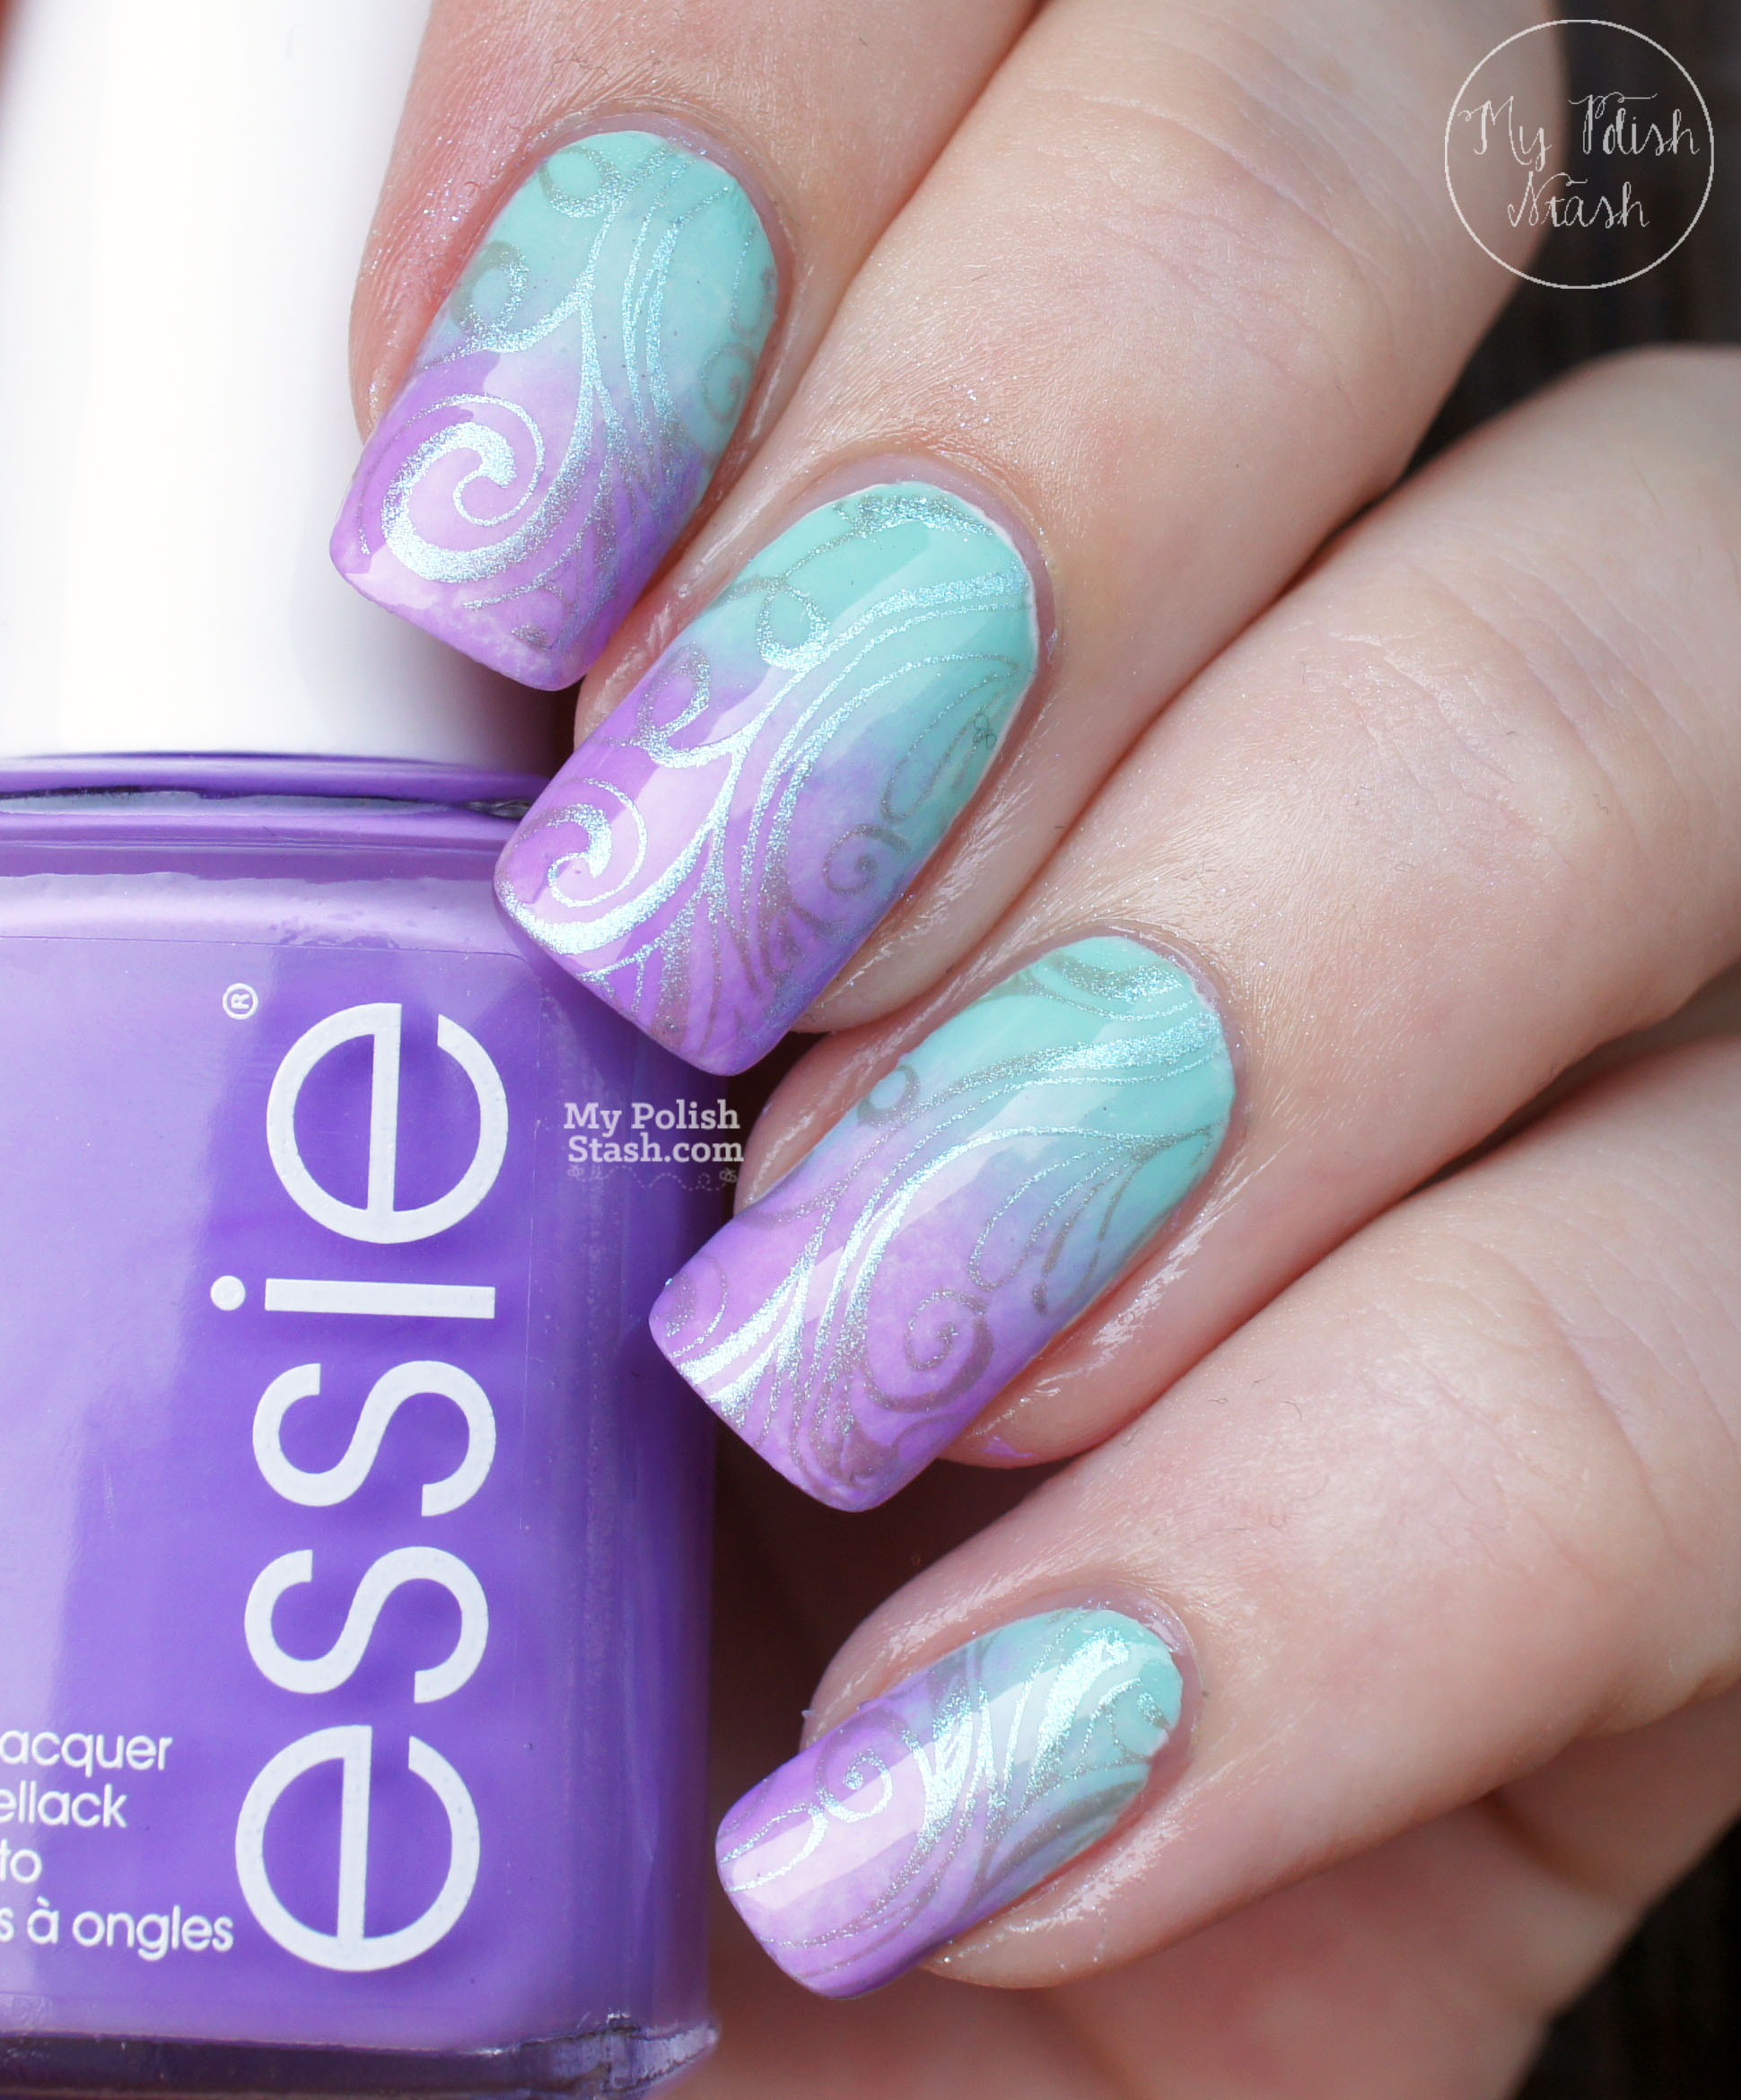 lilac-mint-gradient-nails-with-duochrome-stamping-shade